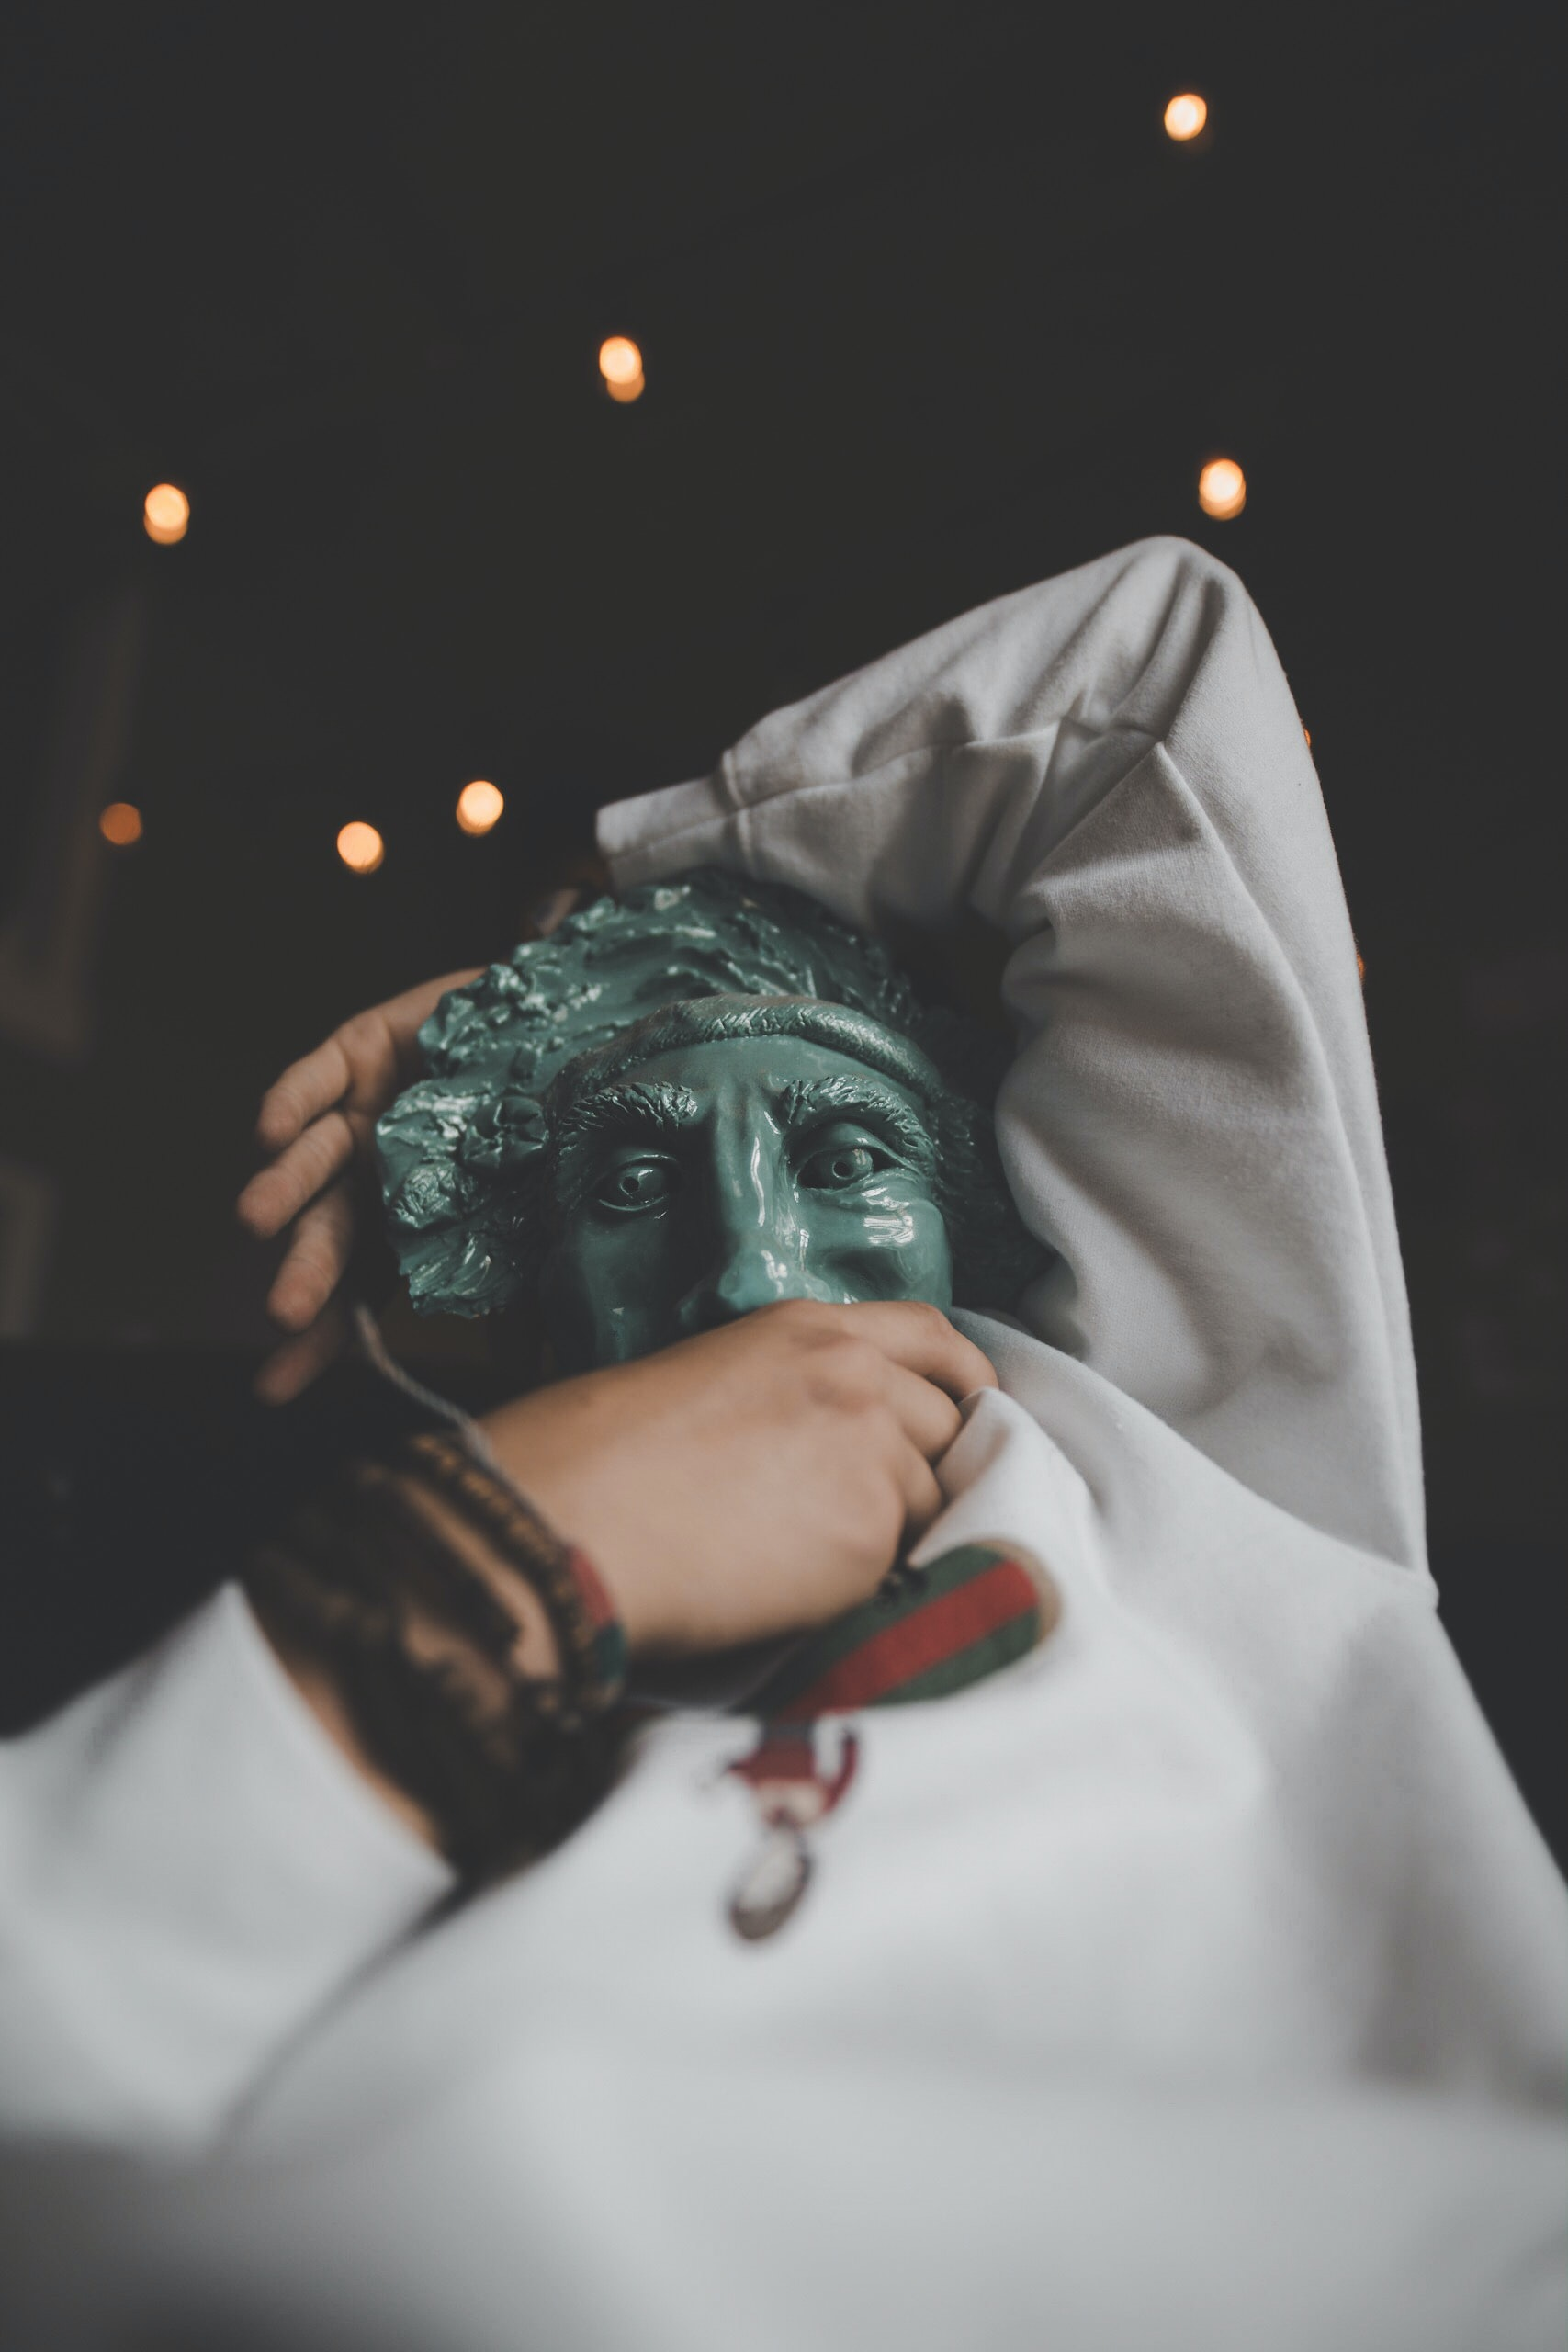 person holding green ceramic mask